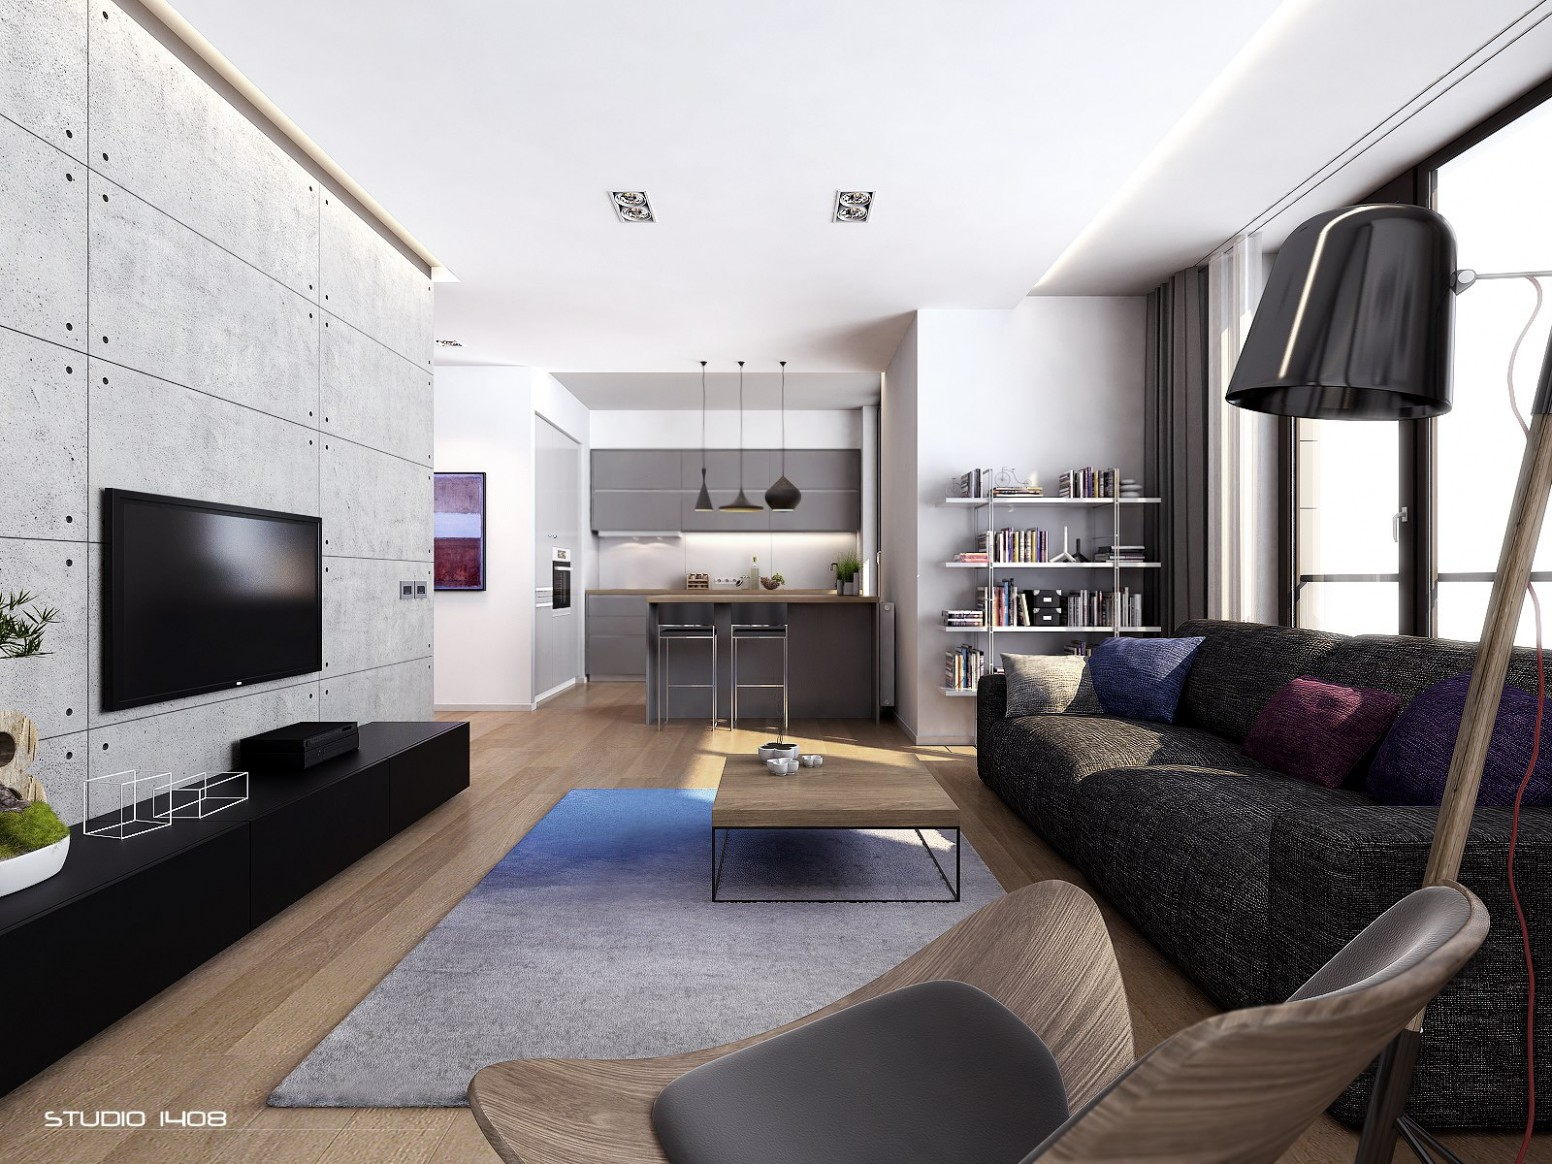 Apartment Living for the Modern Minimalist - Minimalist Apartment Decor Ideas